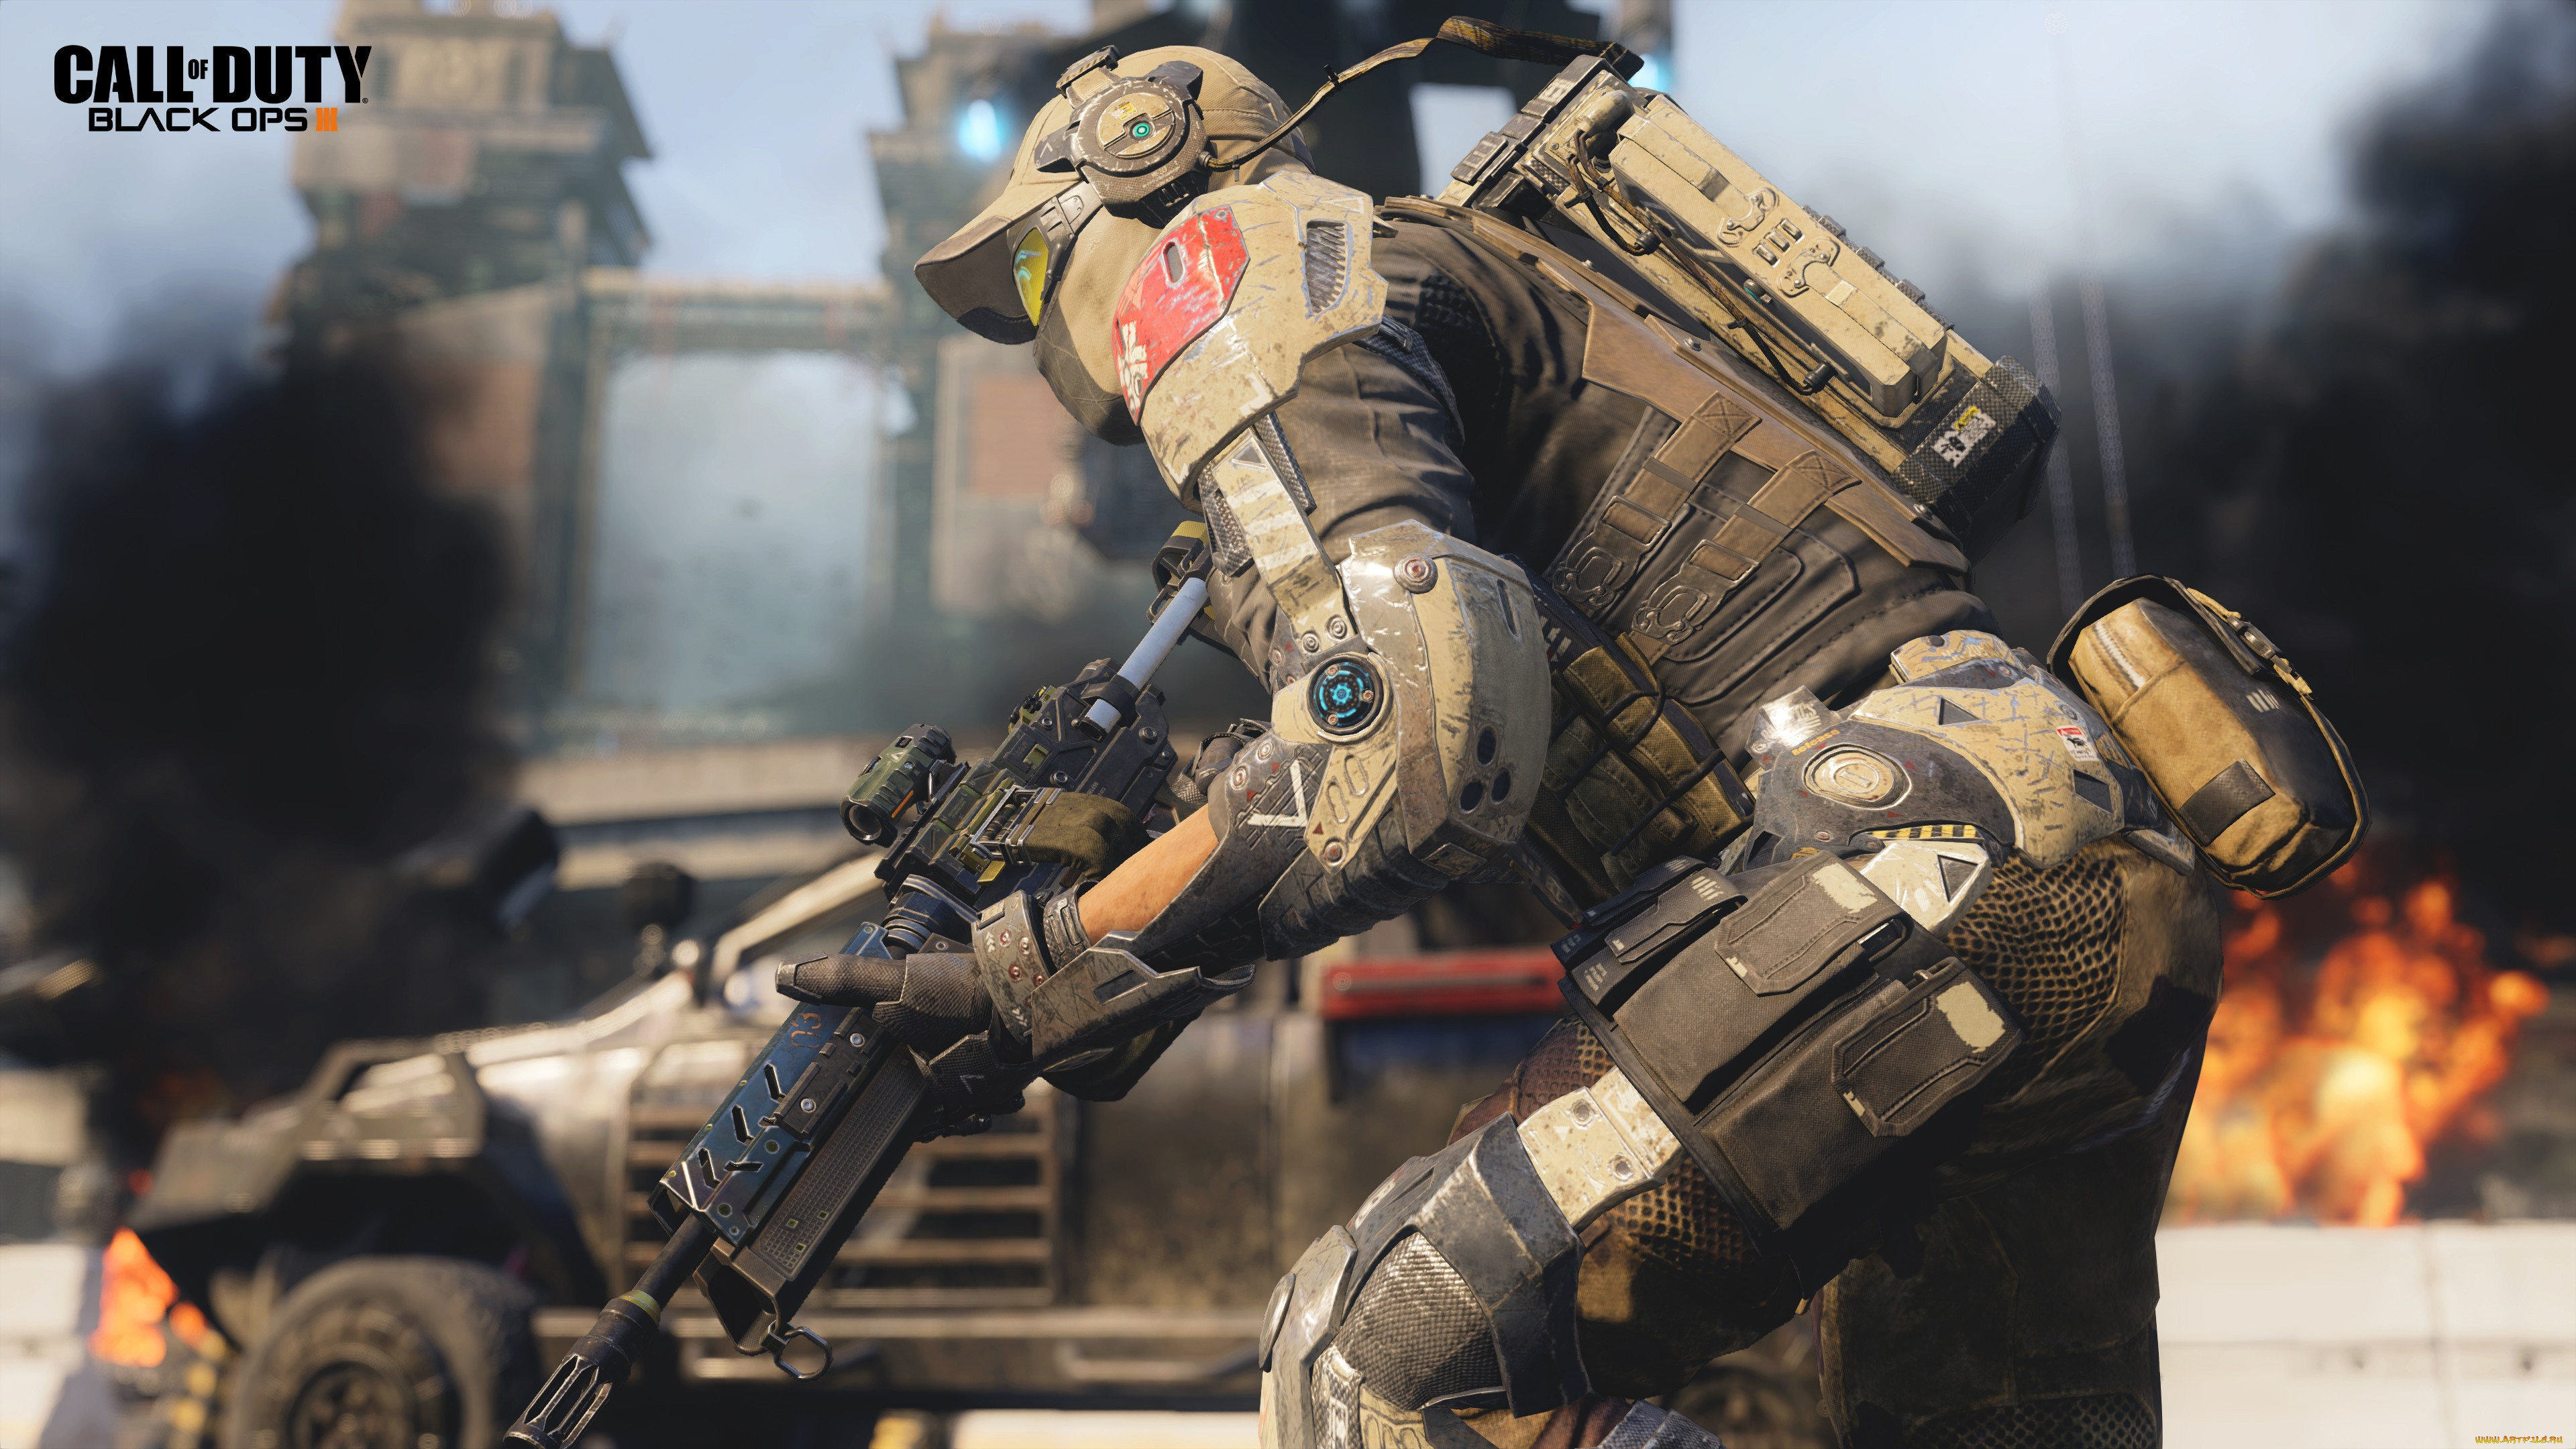 Call Of Duty Black Ops 3 Hd Wallpapers Free Download